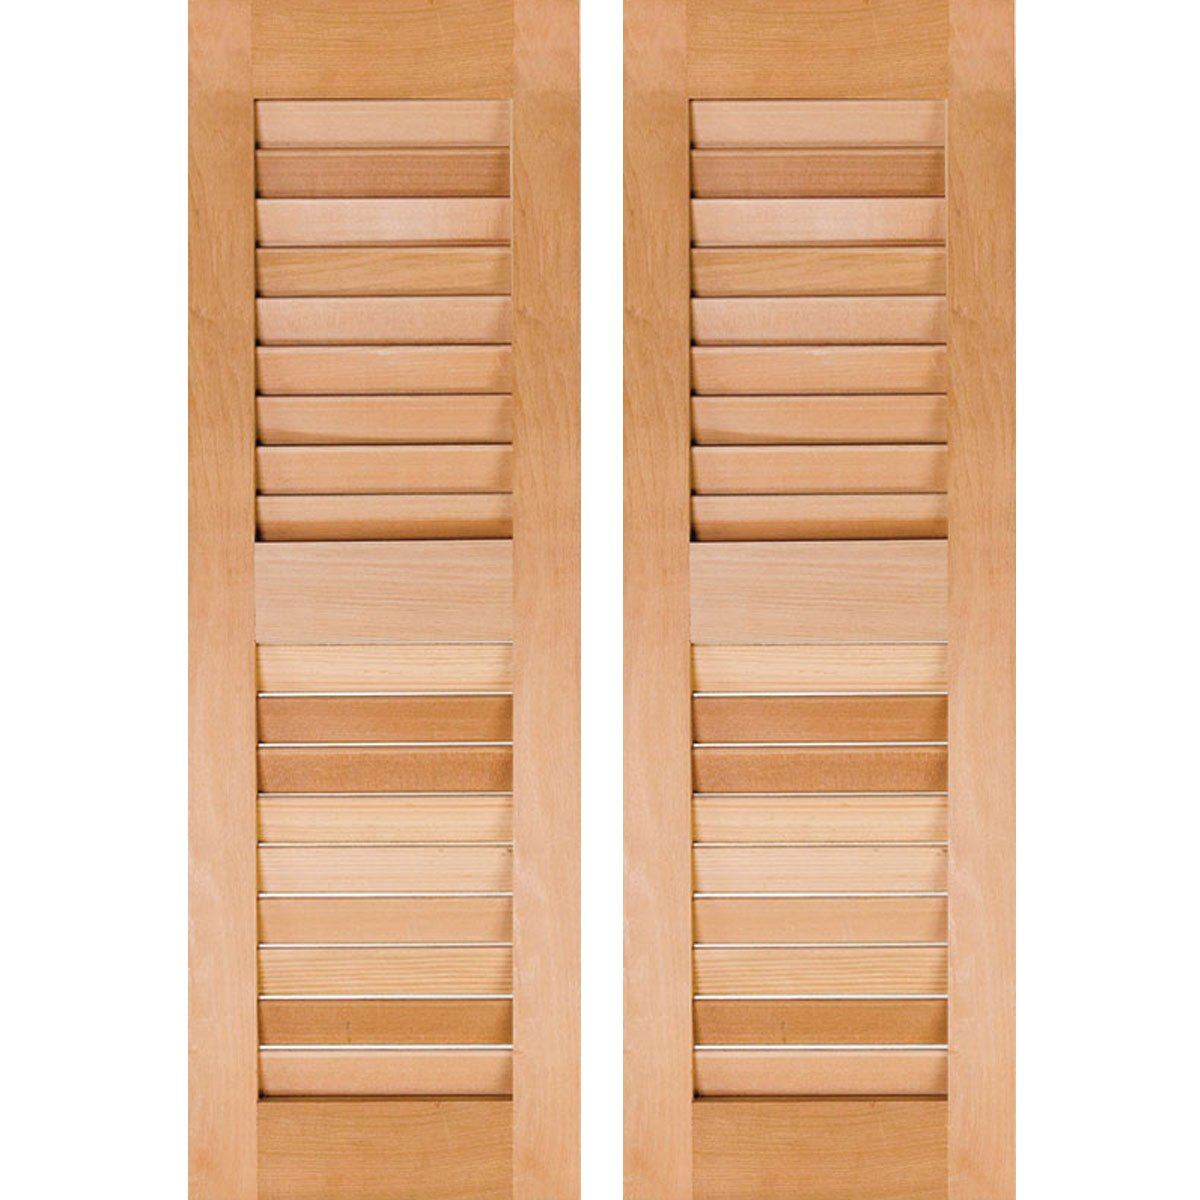 Ekena Millwork RWL12X043UNP Exterior Real Wood Pine Louvered Shutters (Per Pair), 12'' x 43'', Unfinished